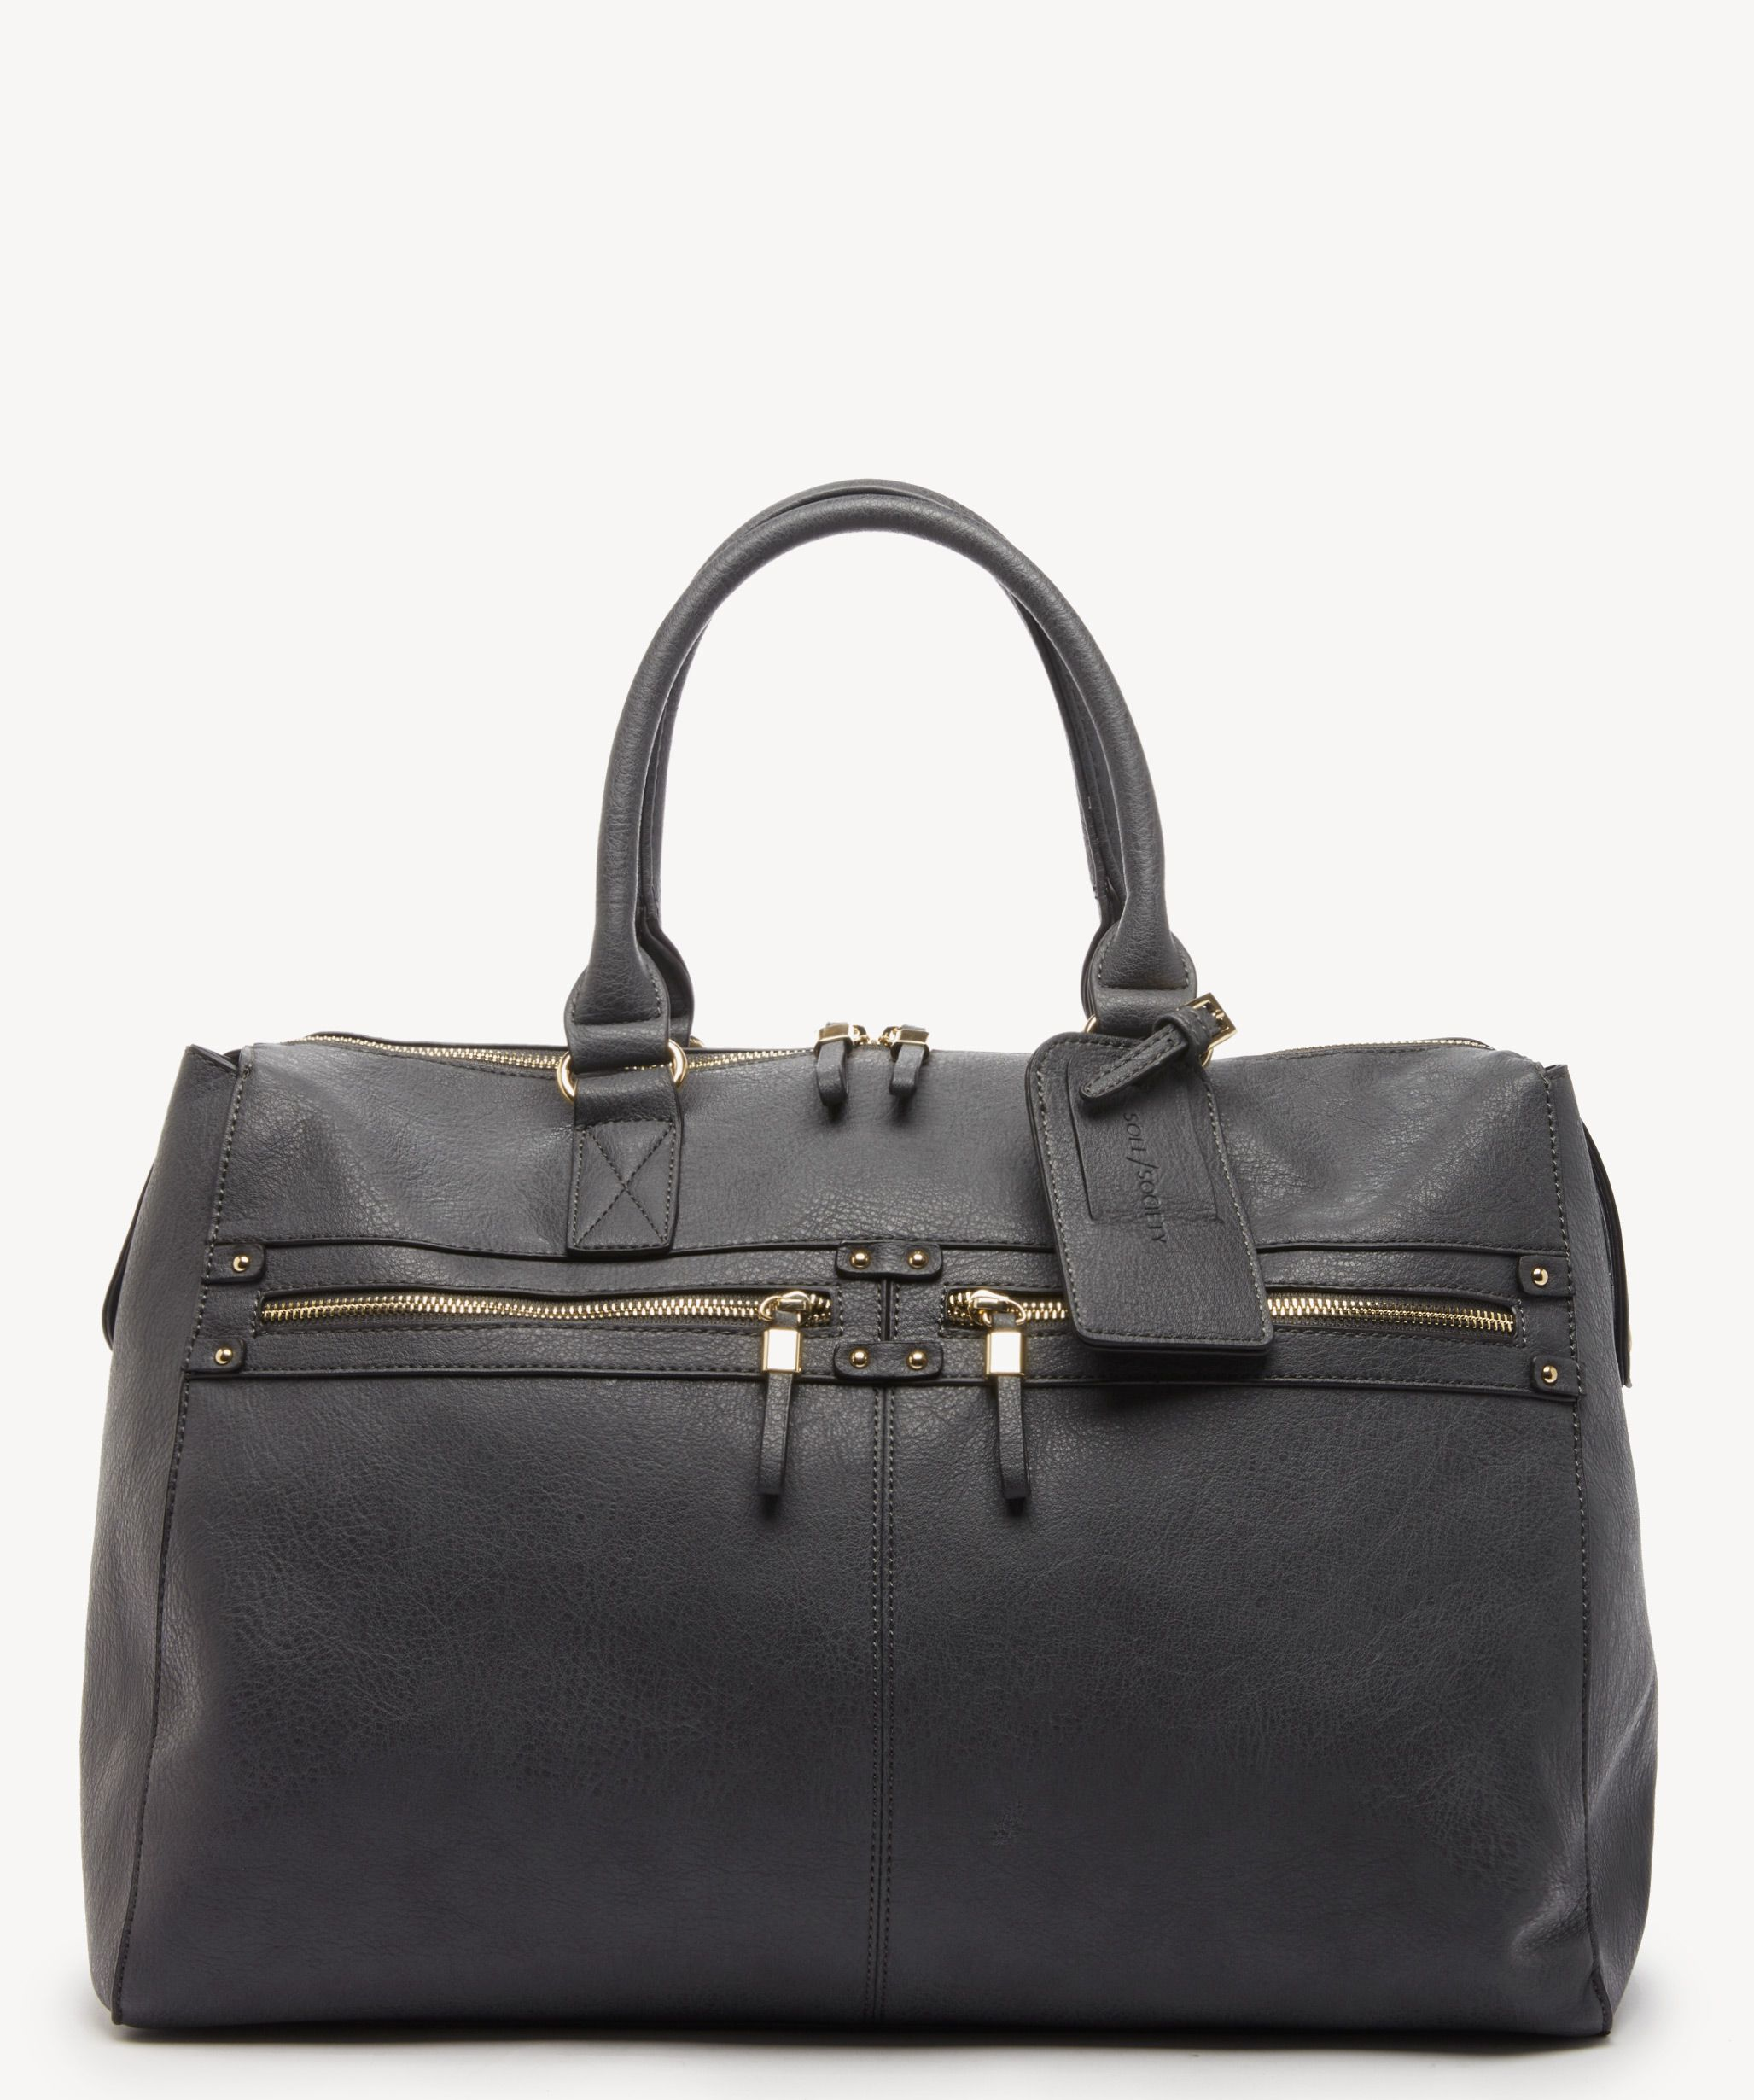 42c47c061 Women's Zypa Weekender Vegan Duffel In Color: Grey One Size Bag | Vegan  Leather | From Sole Society